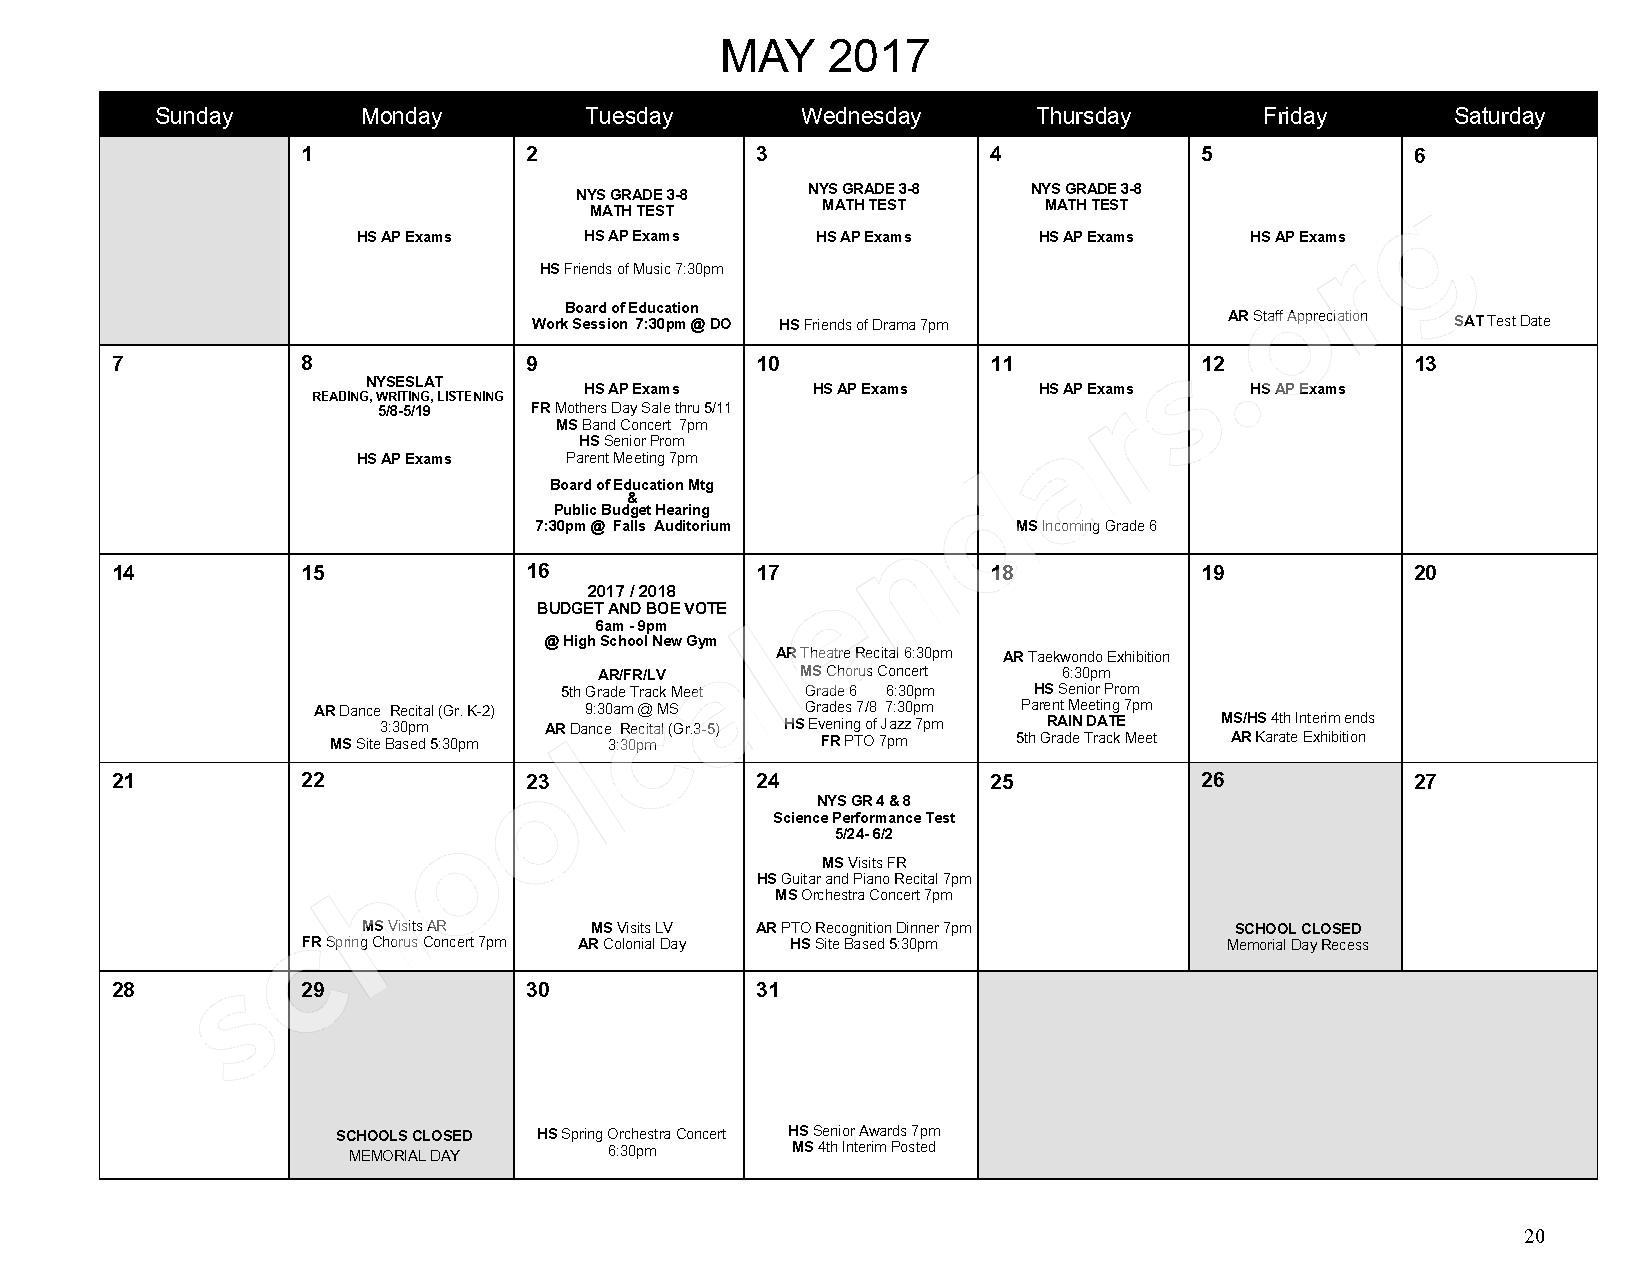 2016 - 2017 District Calendar – Lakeview Elementary School – page 21